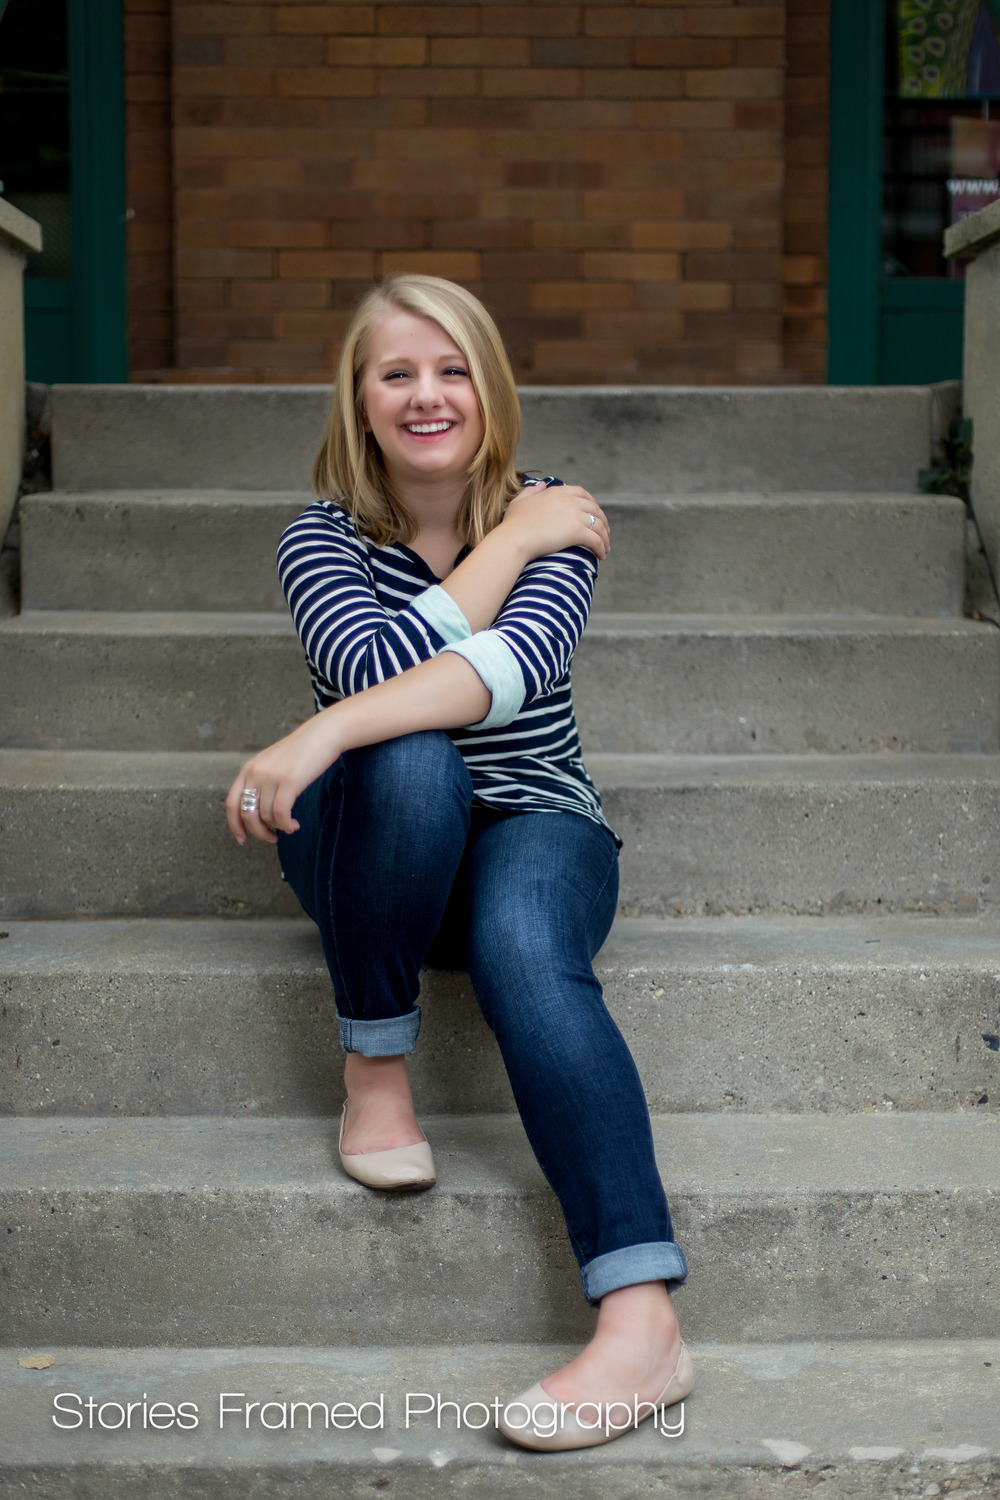 Wauwatosa-East-Senior-Portraits-Third-Ward-class-of-2016-stairs-02